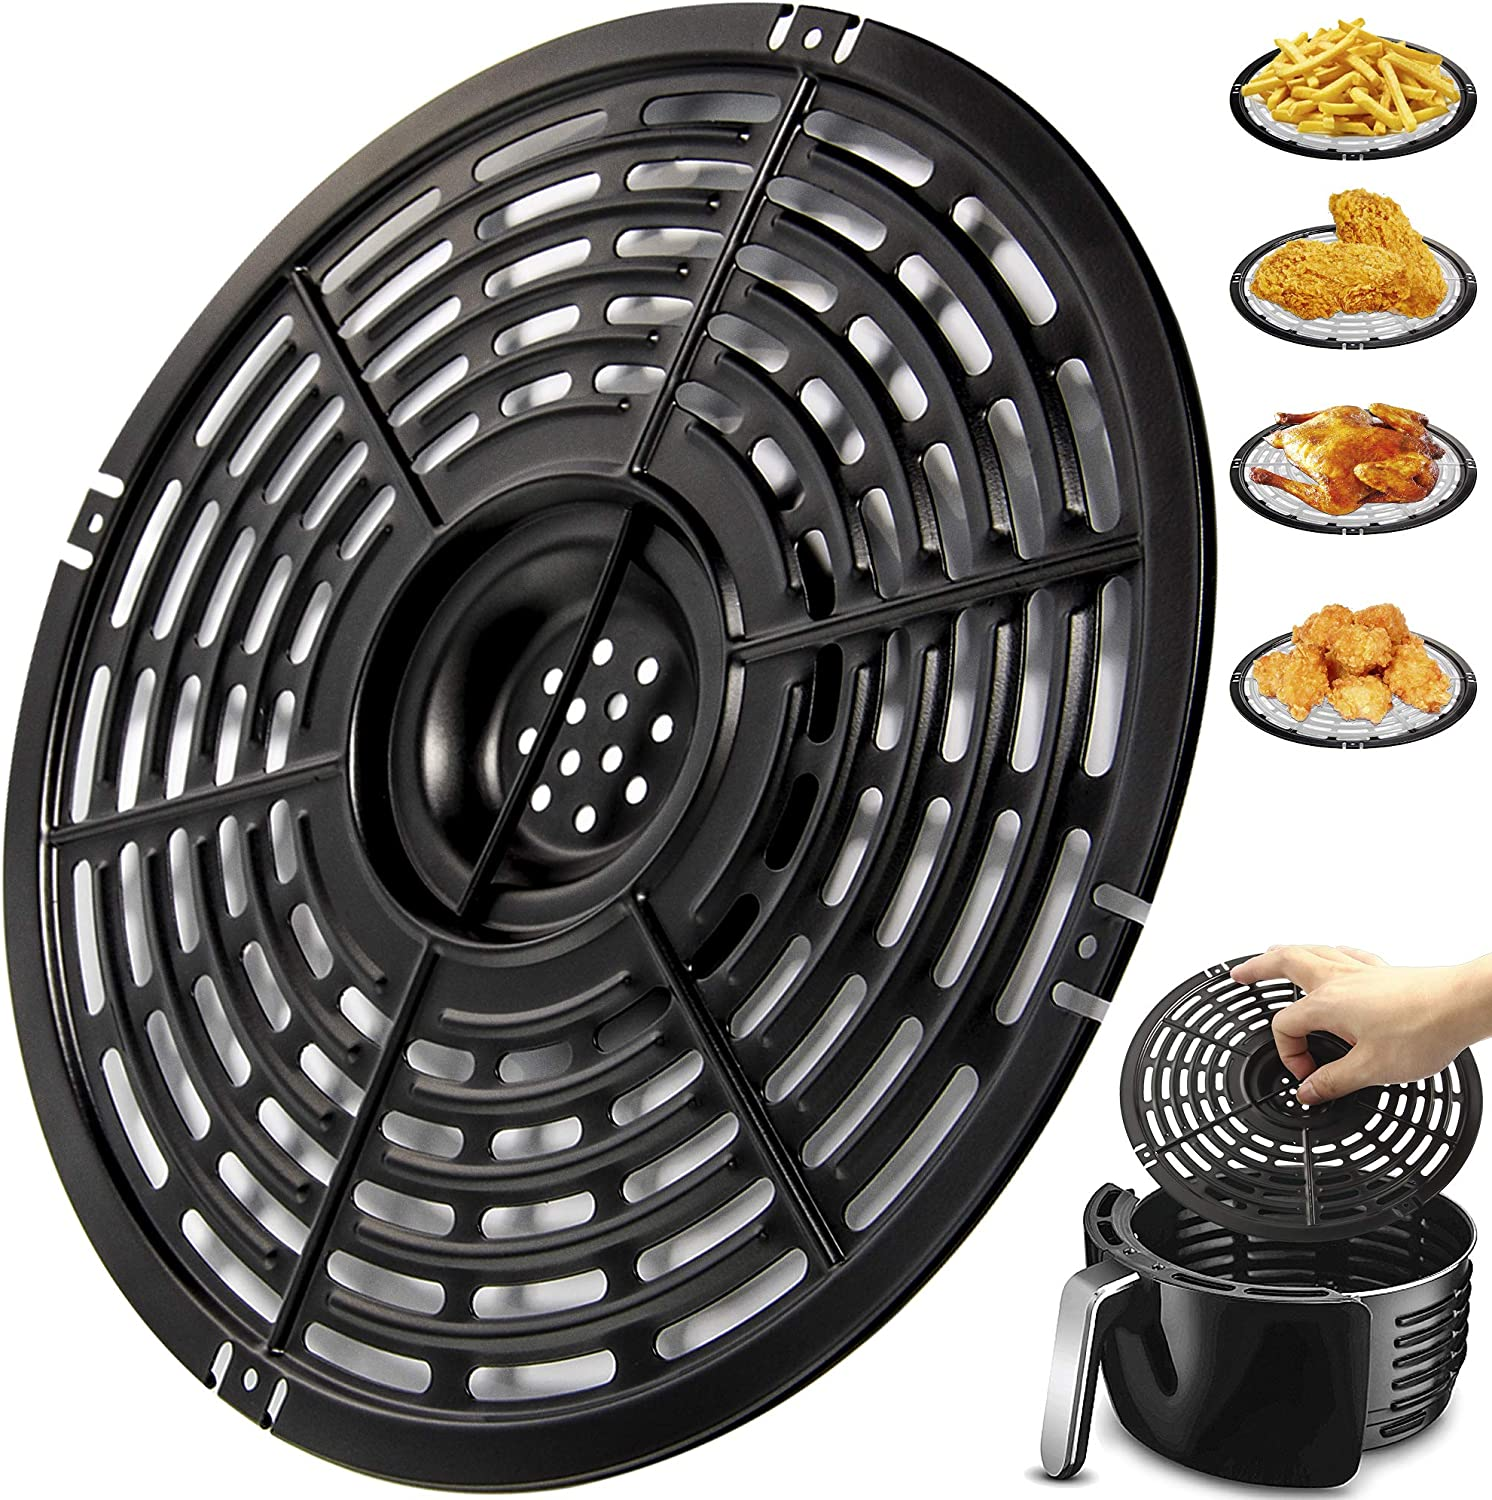 Air Fryer Replacement Grill Pan For Power Gowise 5QT Air Fryers, Crisper Pan, Air Fryer Accessories, Non-Stick Air Fryer Pan, Dishwasher Safe